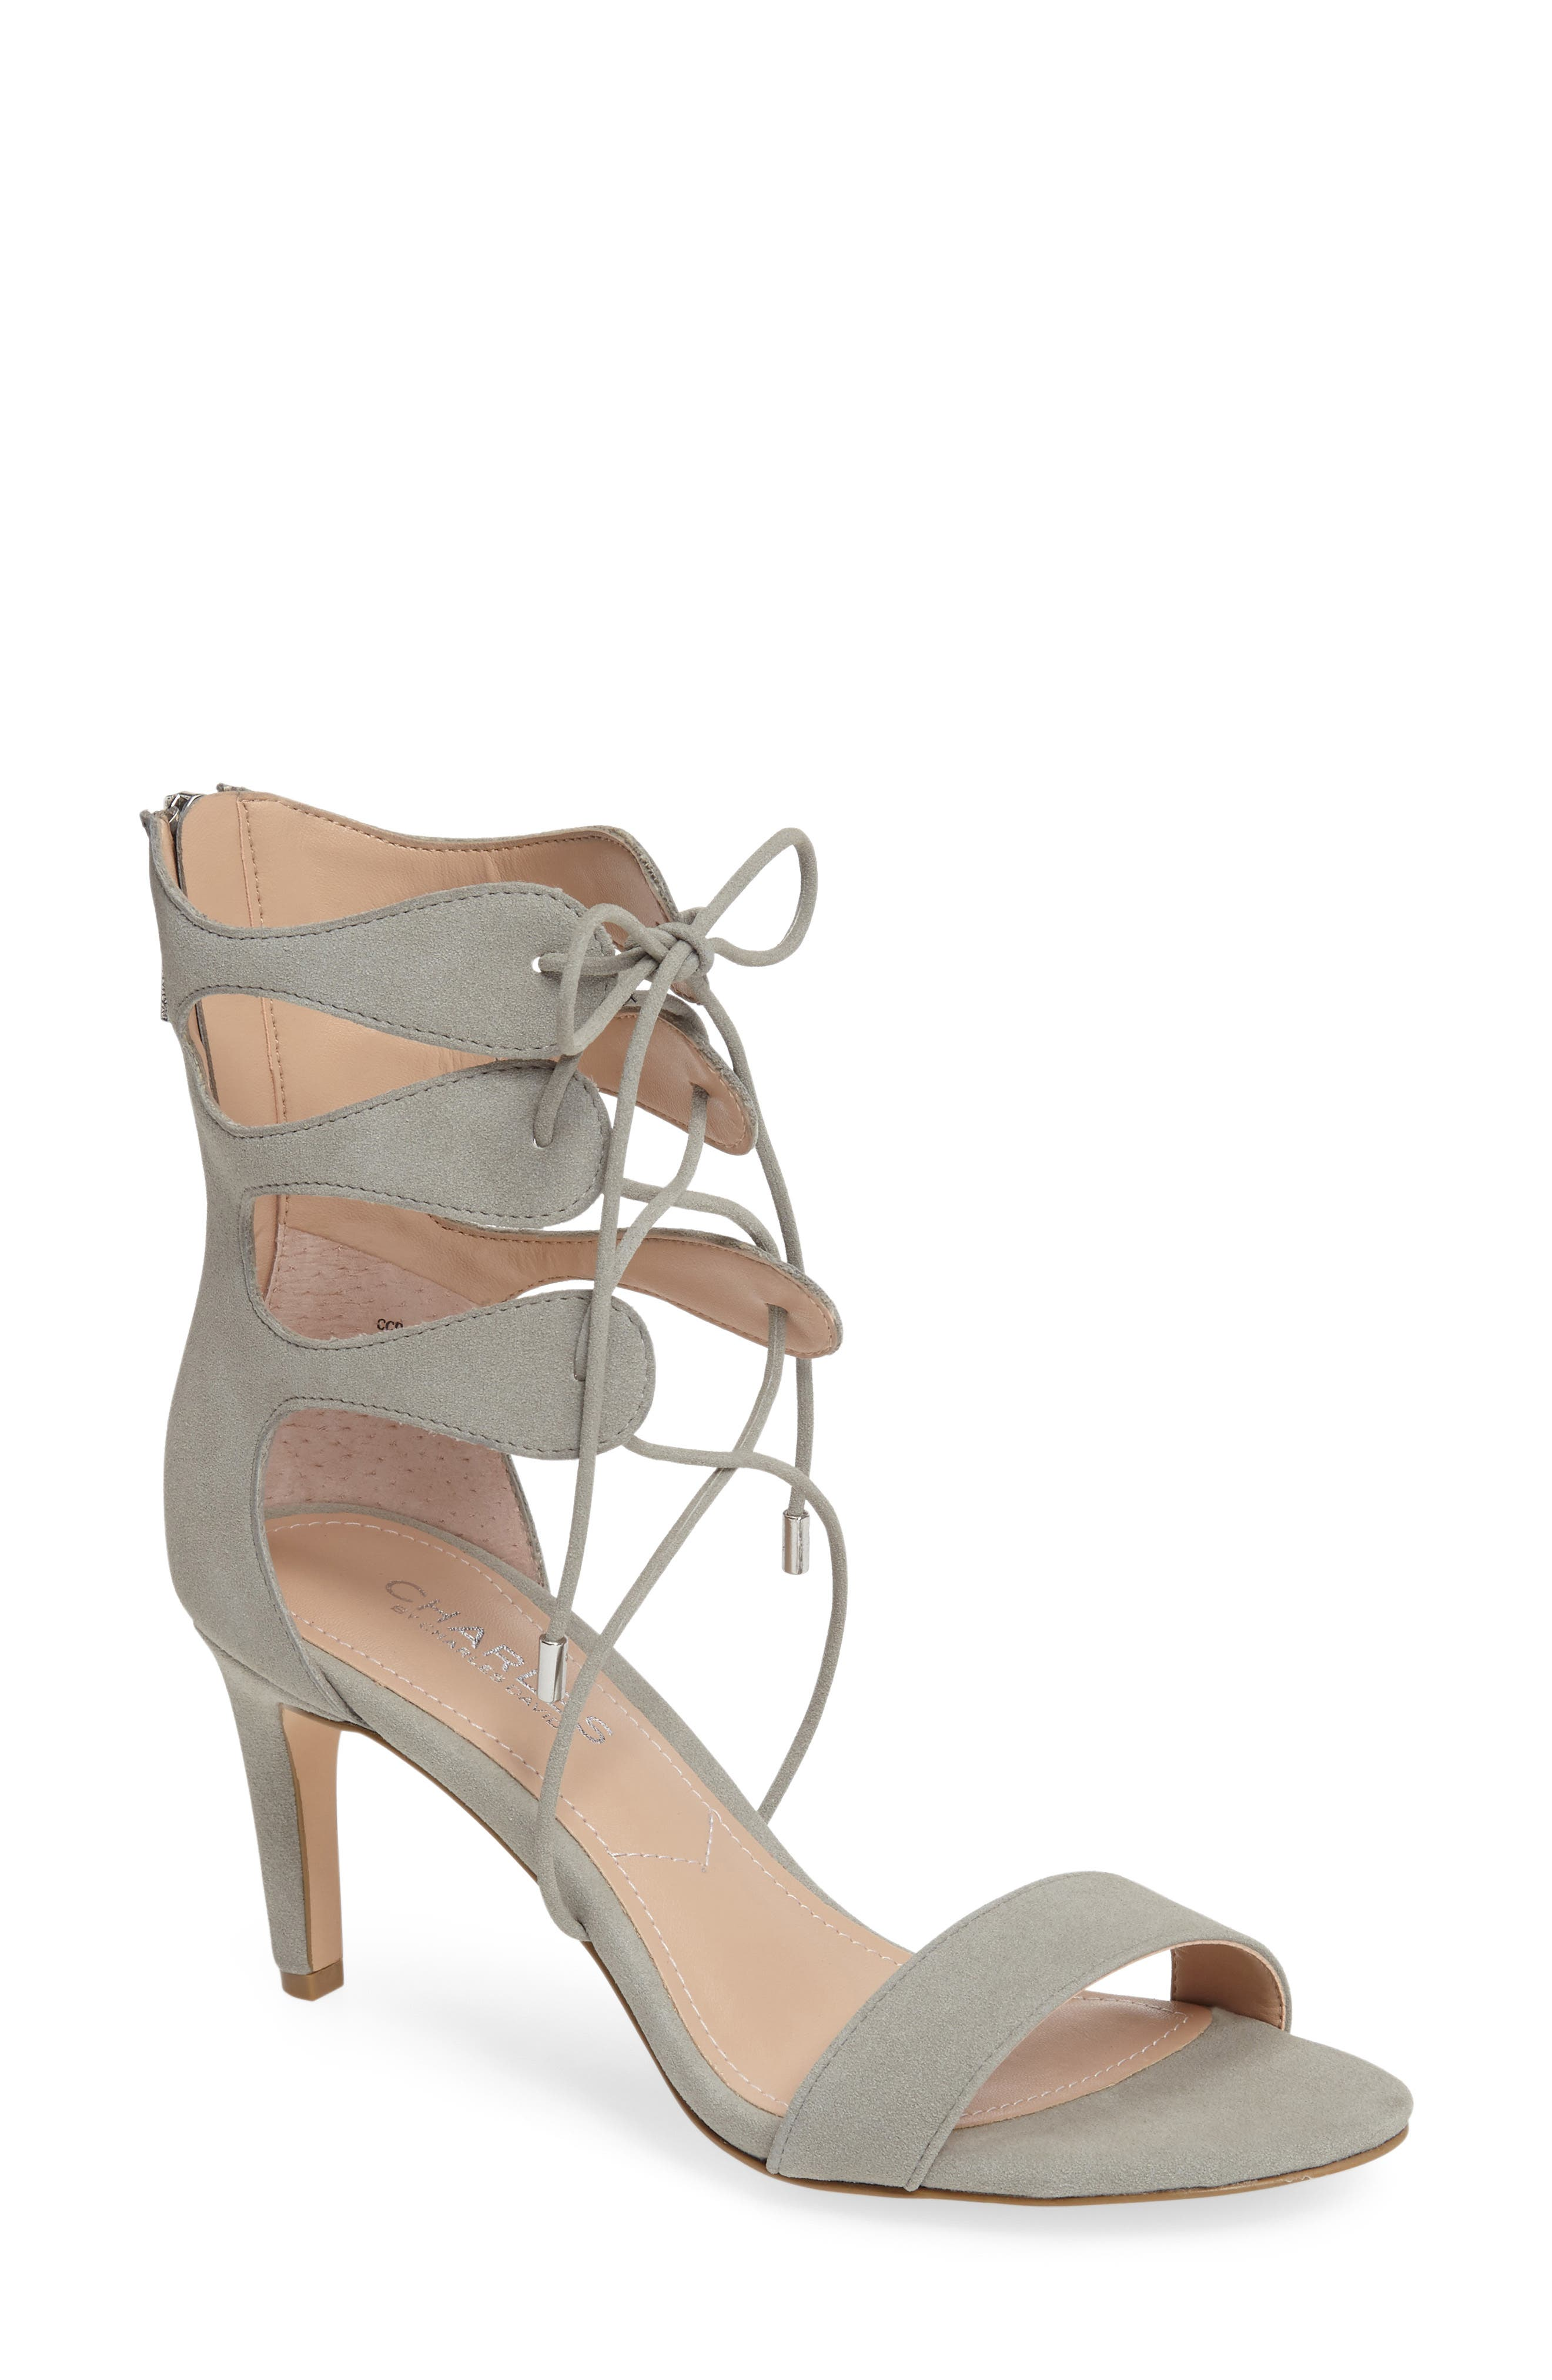 Main Image - Charles by Charles David Zone Lace-Up Sandal (Women)